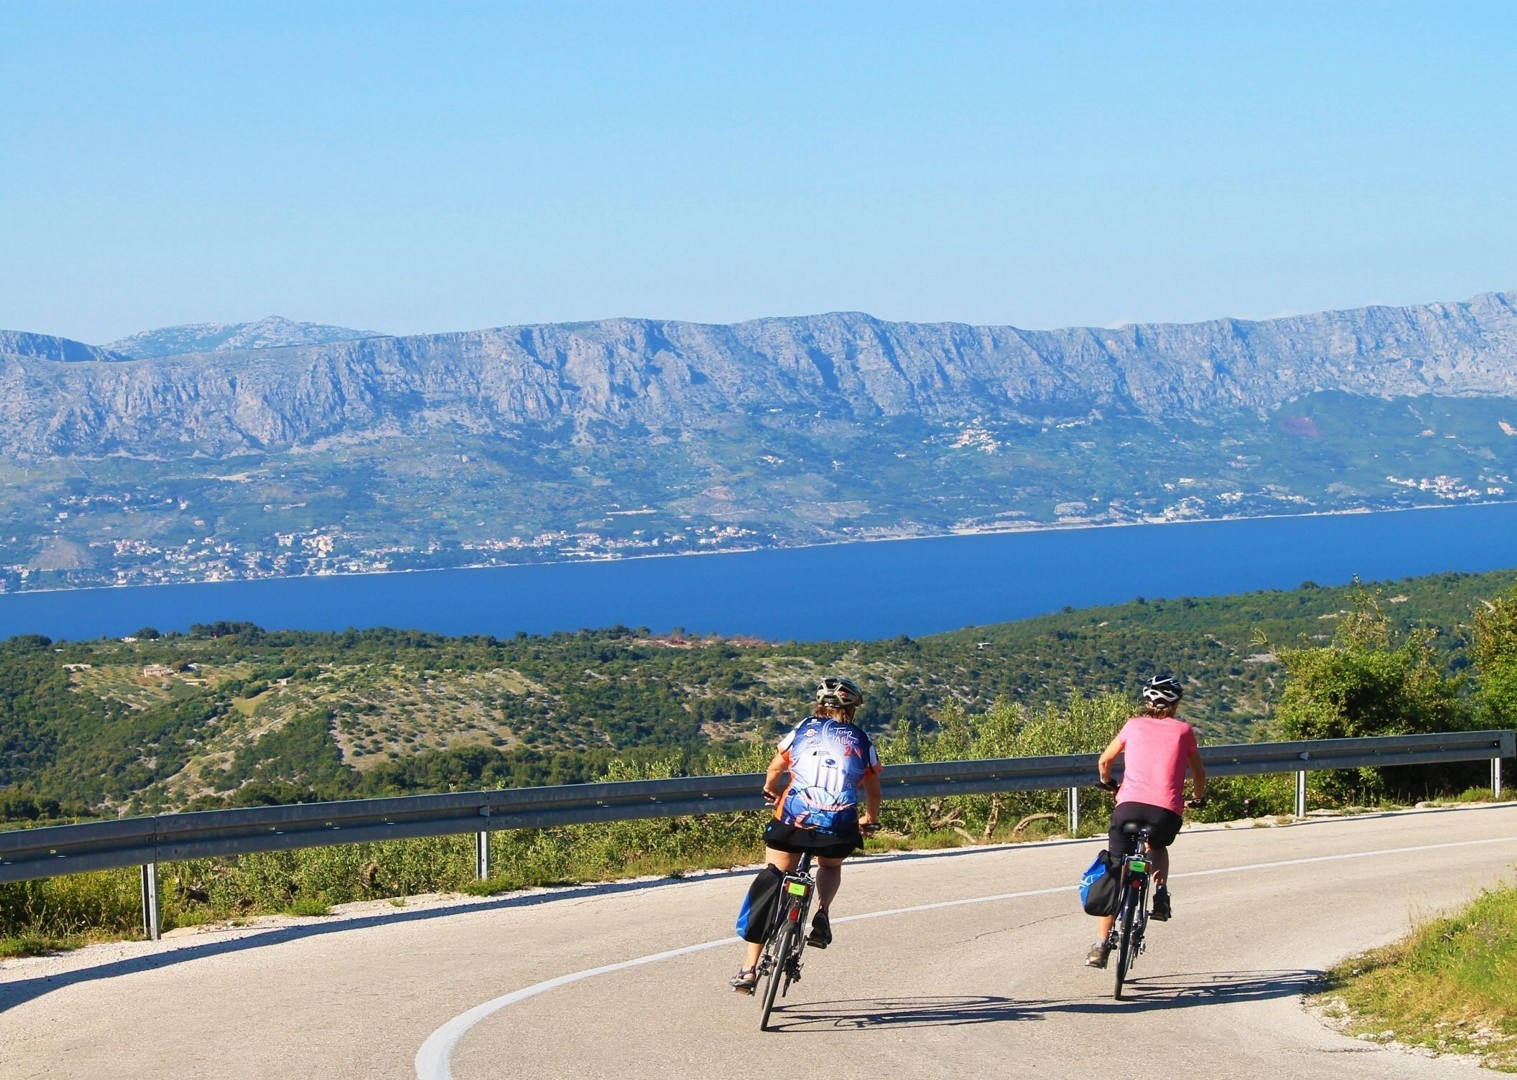 road-to-the-sky-dugi-otok-croatian-holiday-on-bike - NEW! Croatia - Kvarner Bay Plus - Leisure Cycling